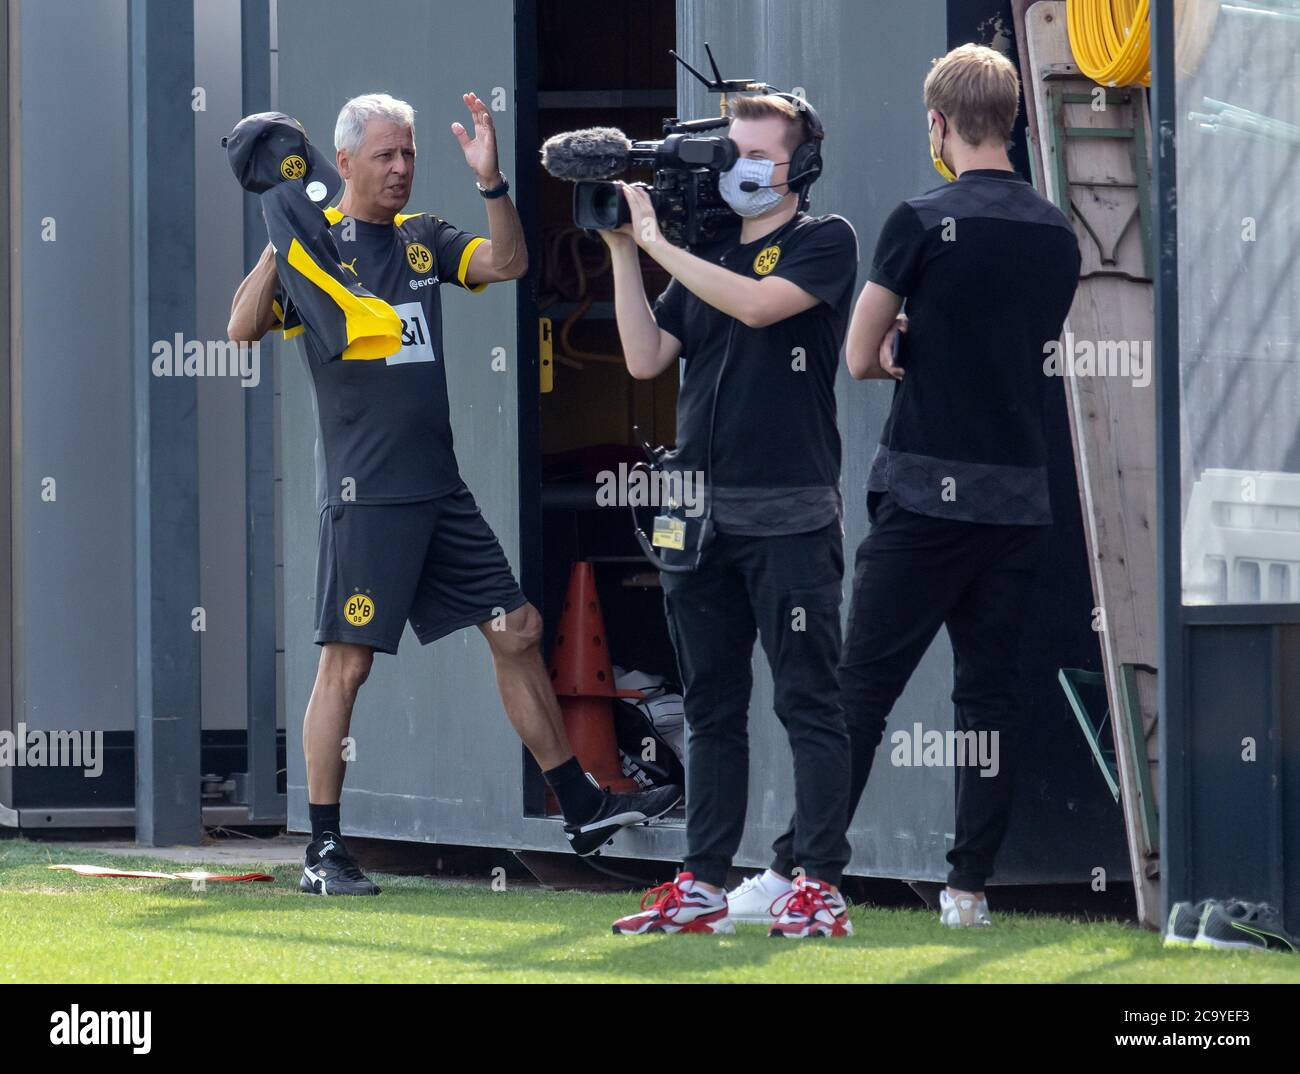 Dortmund Germany 03rd Aug 2020 Coach Lucien Favre L Coach Of Borussia Dortmund Is Standing Next To A Team From The Club S Own Broadcaster On The Training Ground Credit Bernd Thissen Dpa